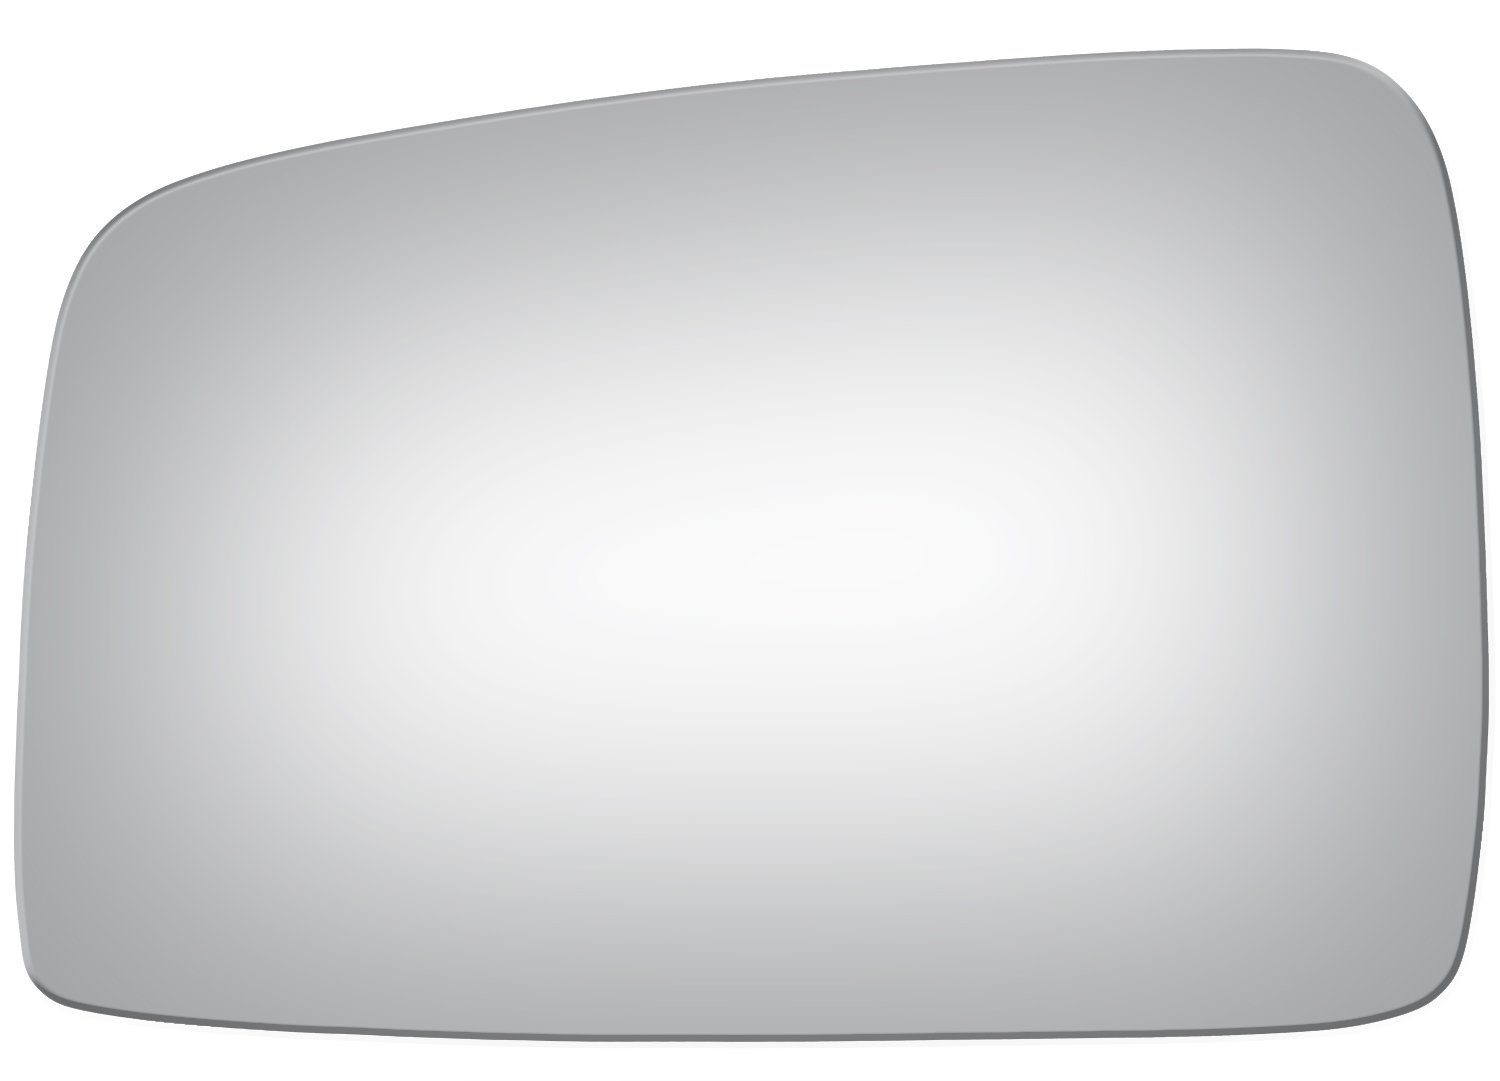 2005, 2006, 2007, 2008, 2009, 2010 Burco 4113 Flat Driver Side Replacement Mirror Glass for 05-10 Kia Sportage